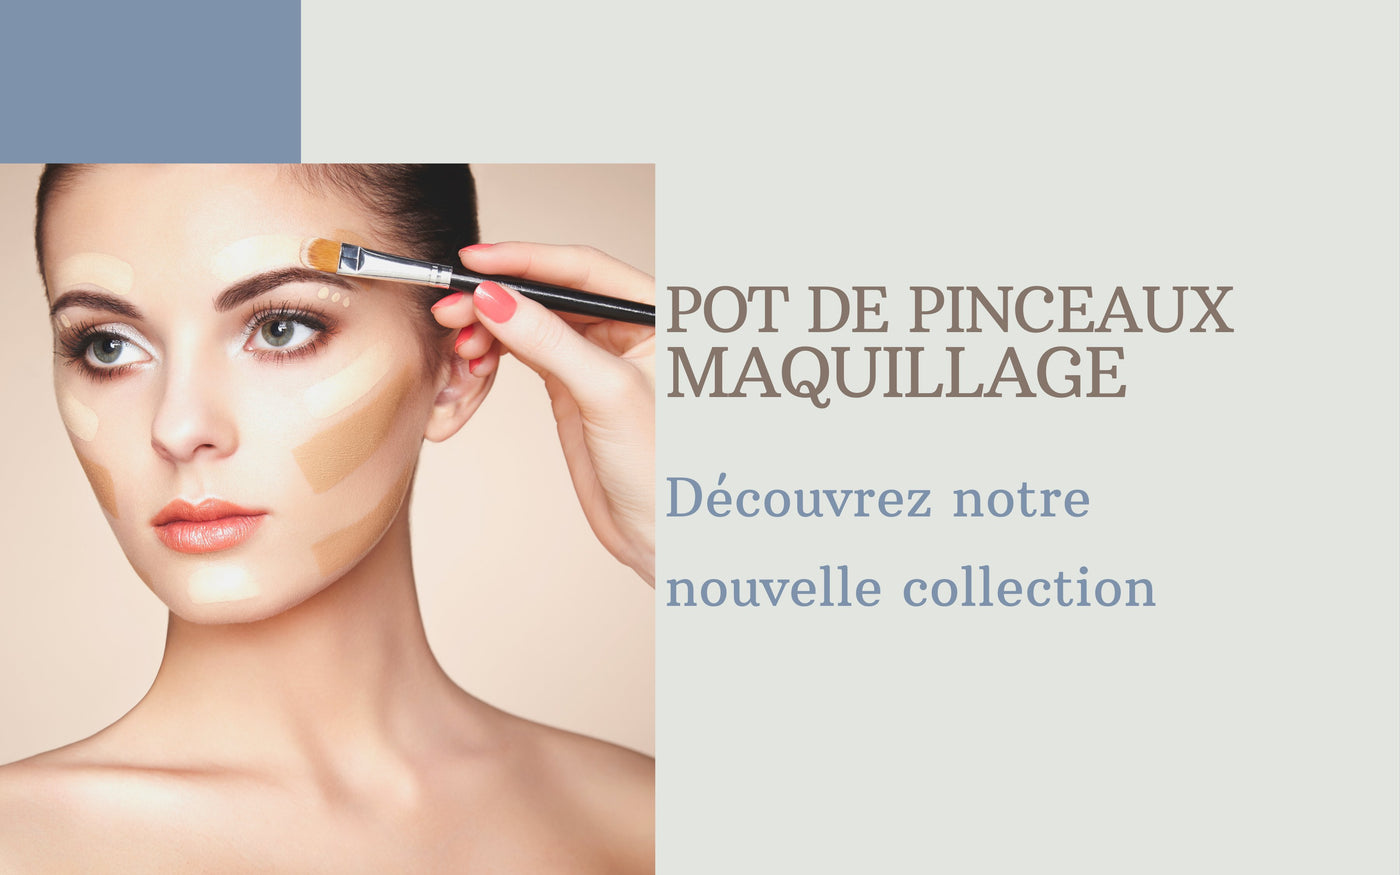 Pot Pinceaux Maquillage